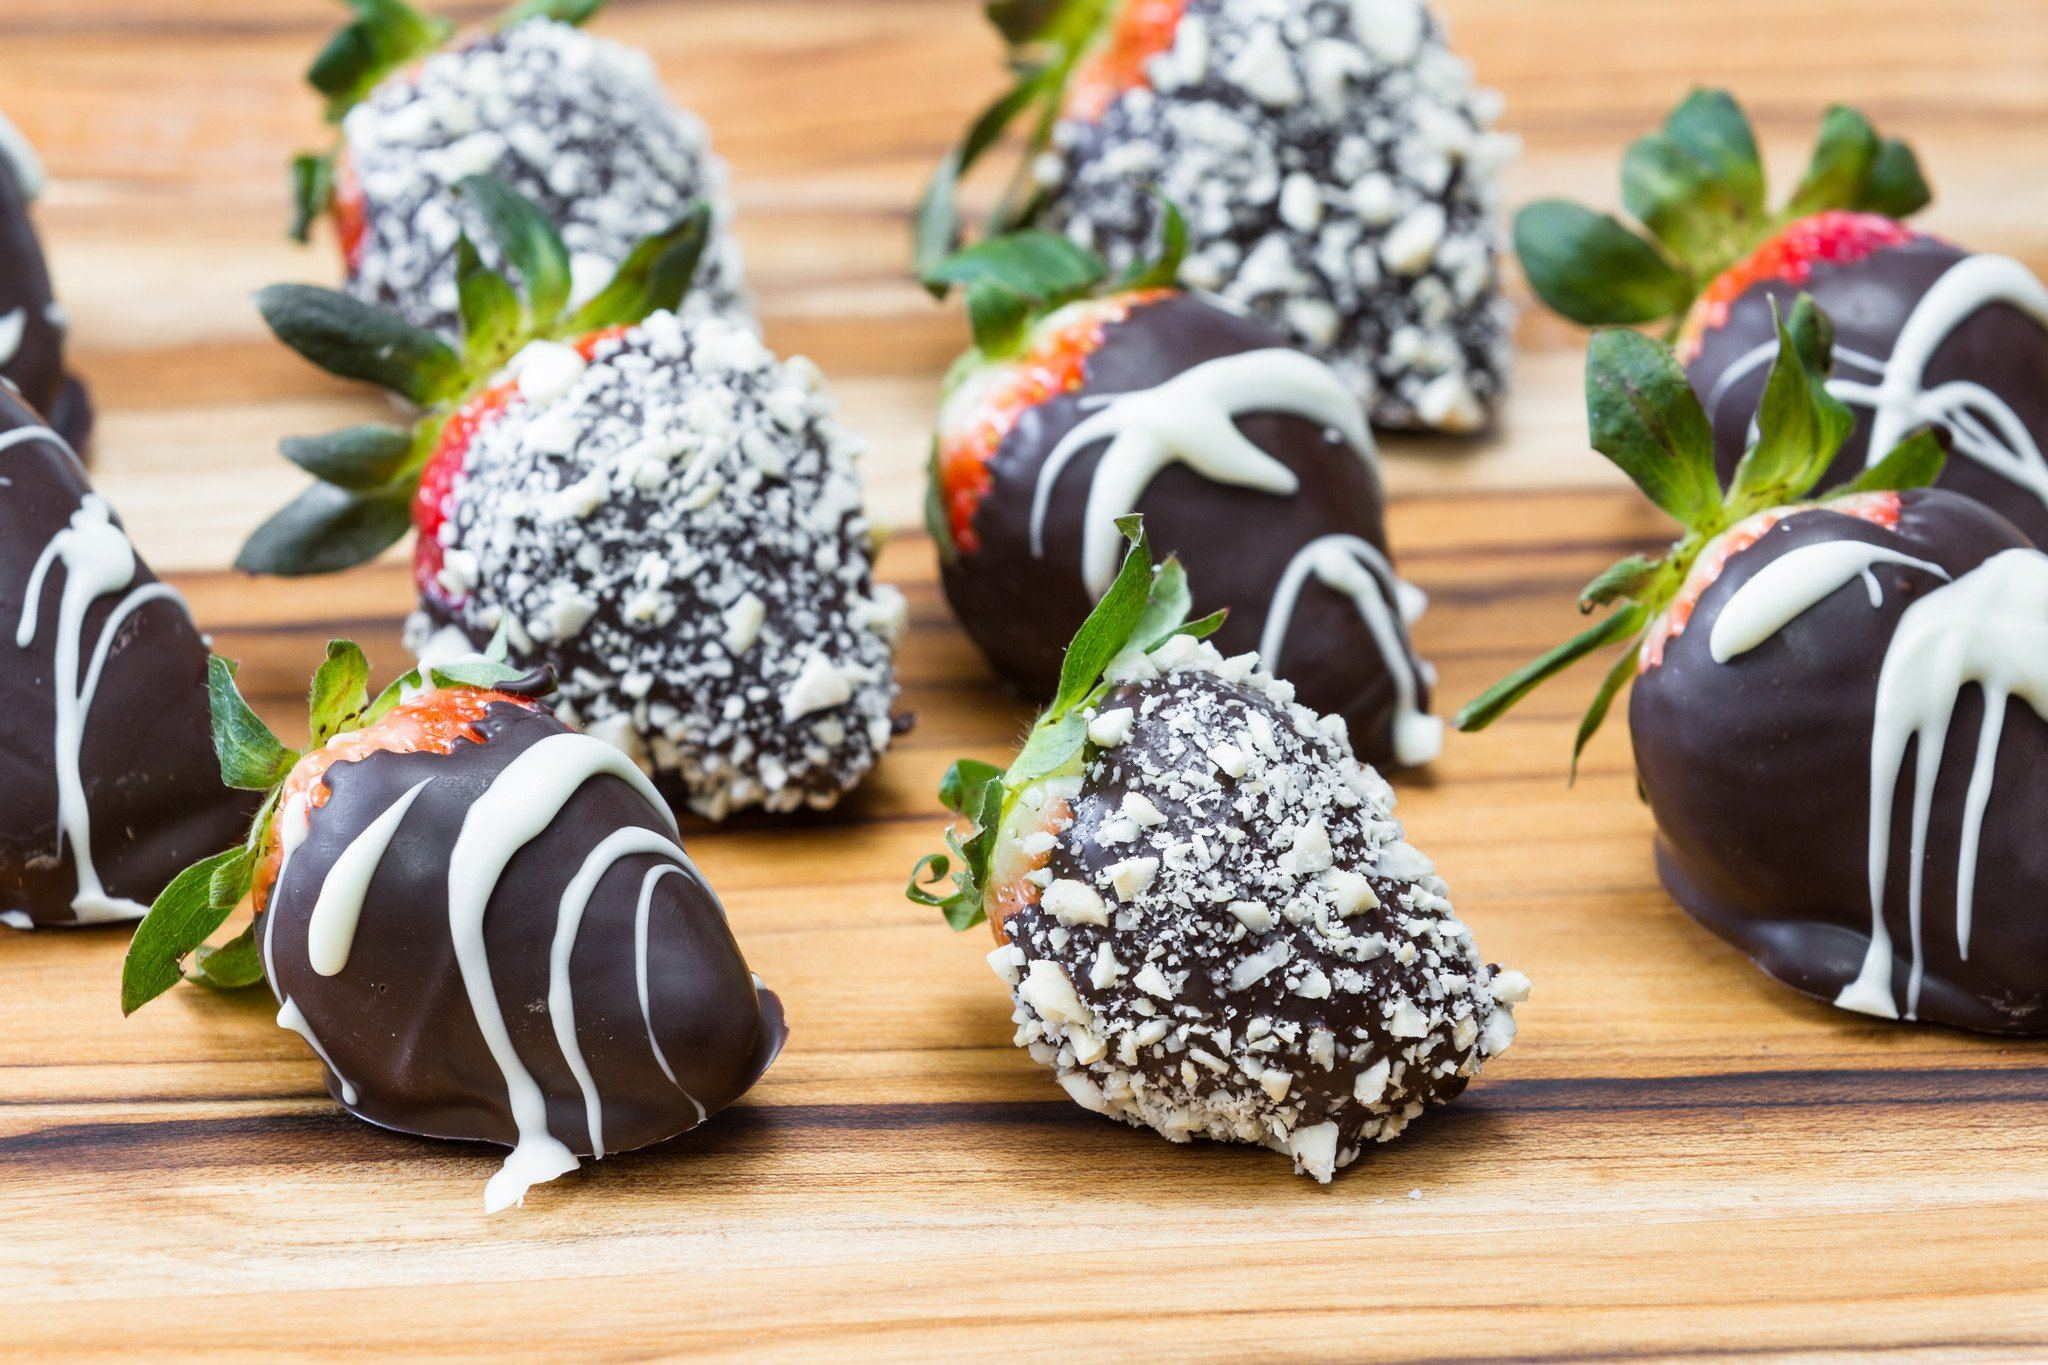 Champagne, Chocolate & Chocolate Dipped Strawberries in a Dome